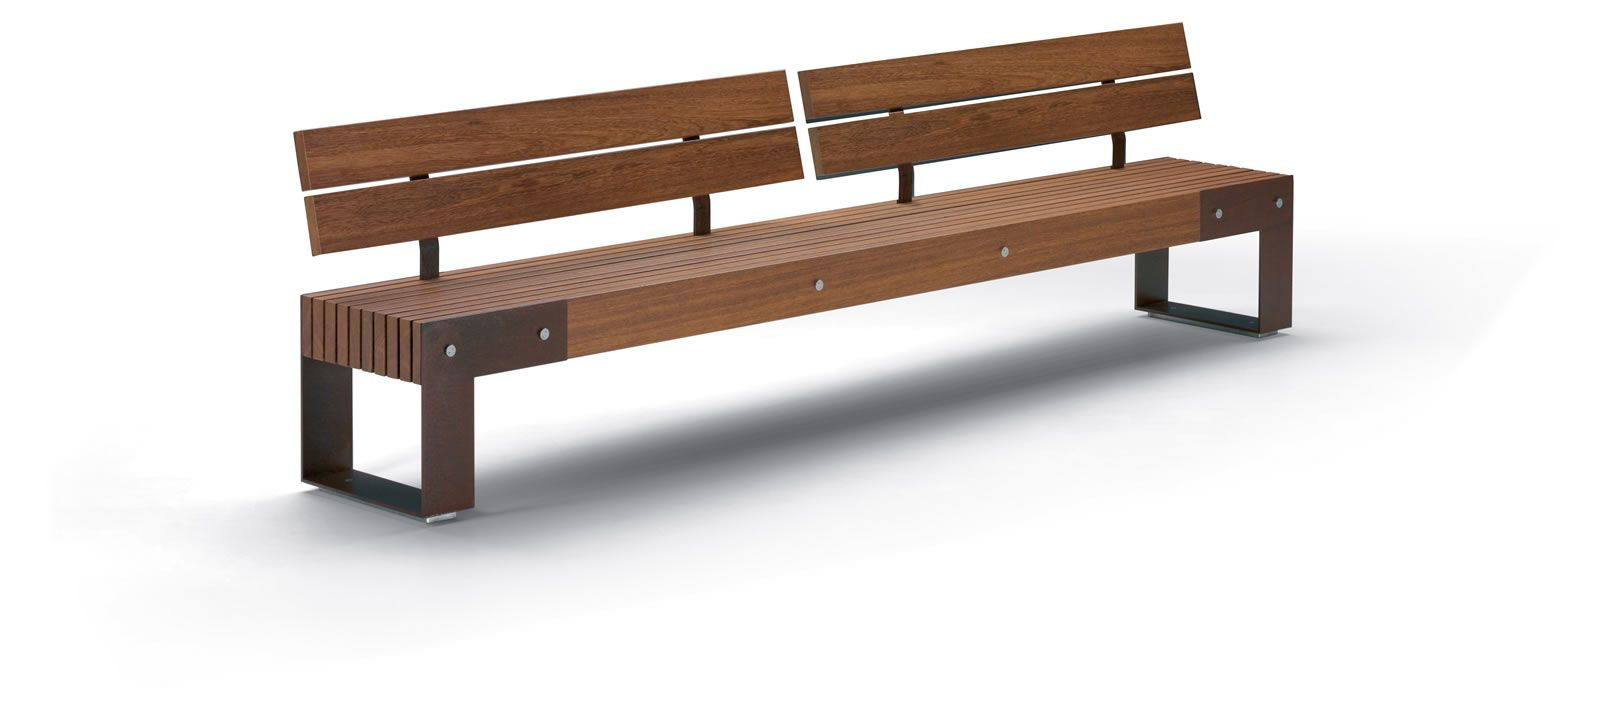 Ideas L Bench Wooden Bench Reclaimed Wood Benches Outdoor Furniture